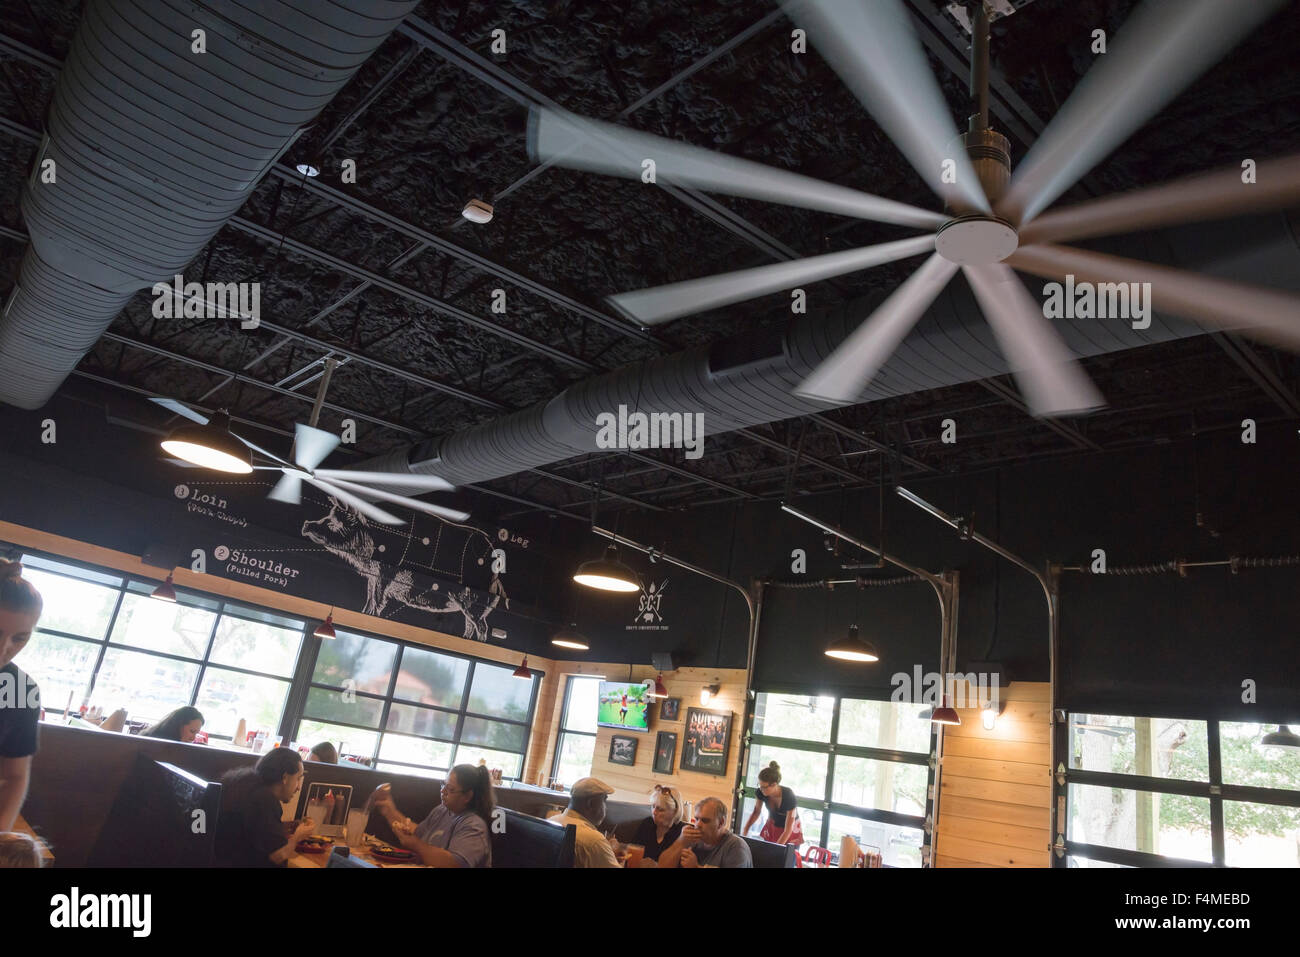 Brand new open air interior of sonnys bbq restaurant sports stock brand new open air interior of sonnys bbq restaurant sports humongous industrial strength and sized ceiling fans mozeypictures Choice Image